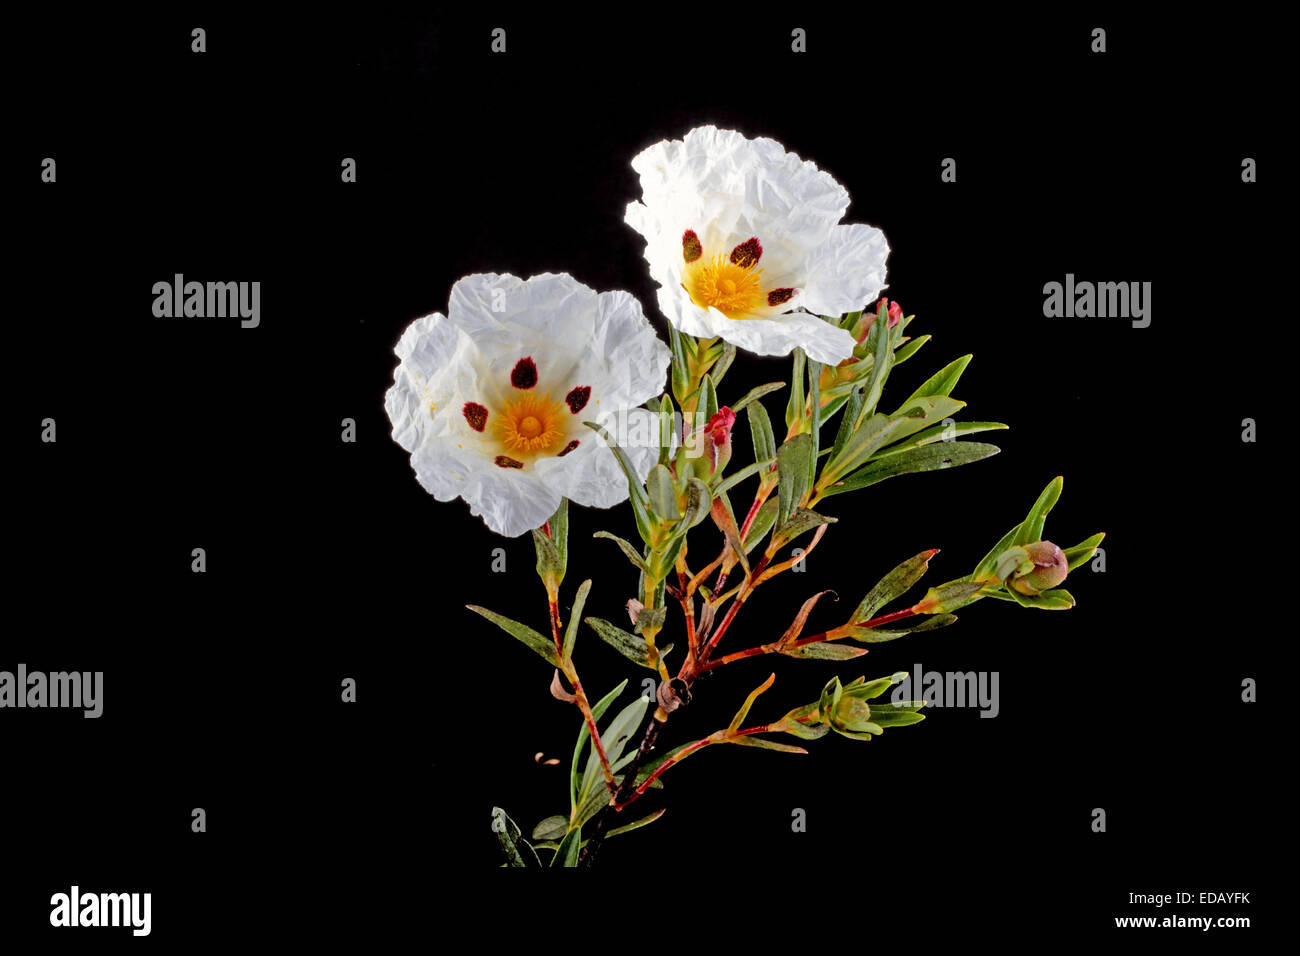 Gum rockrose - Cistus ladanifer - in the heath fields of Alentejo, Portugal - Stock Image